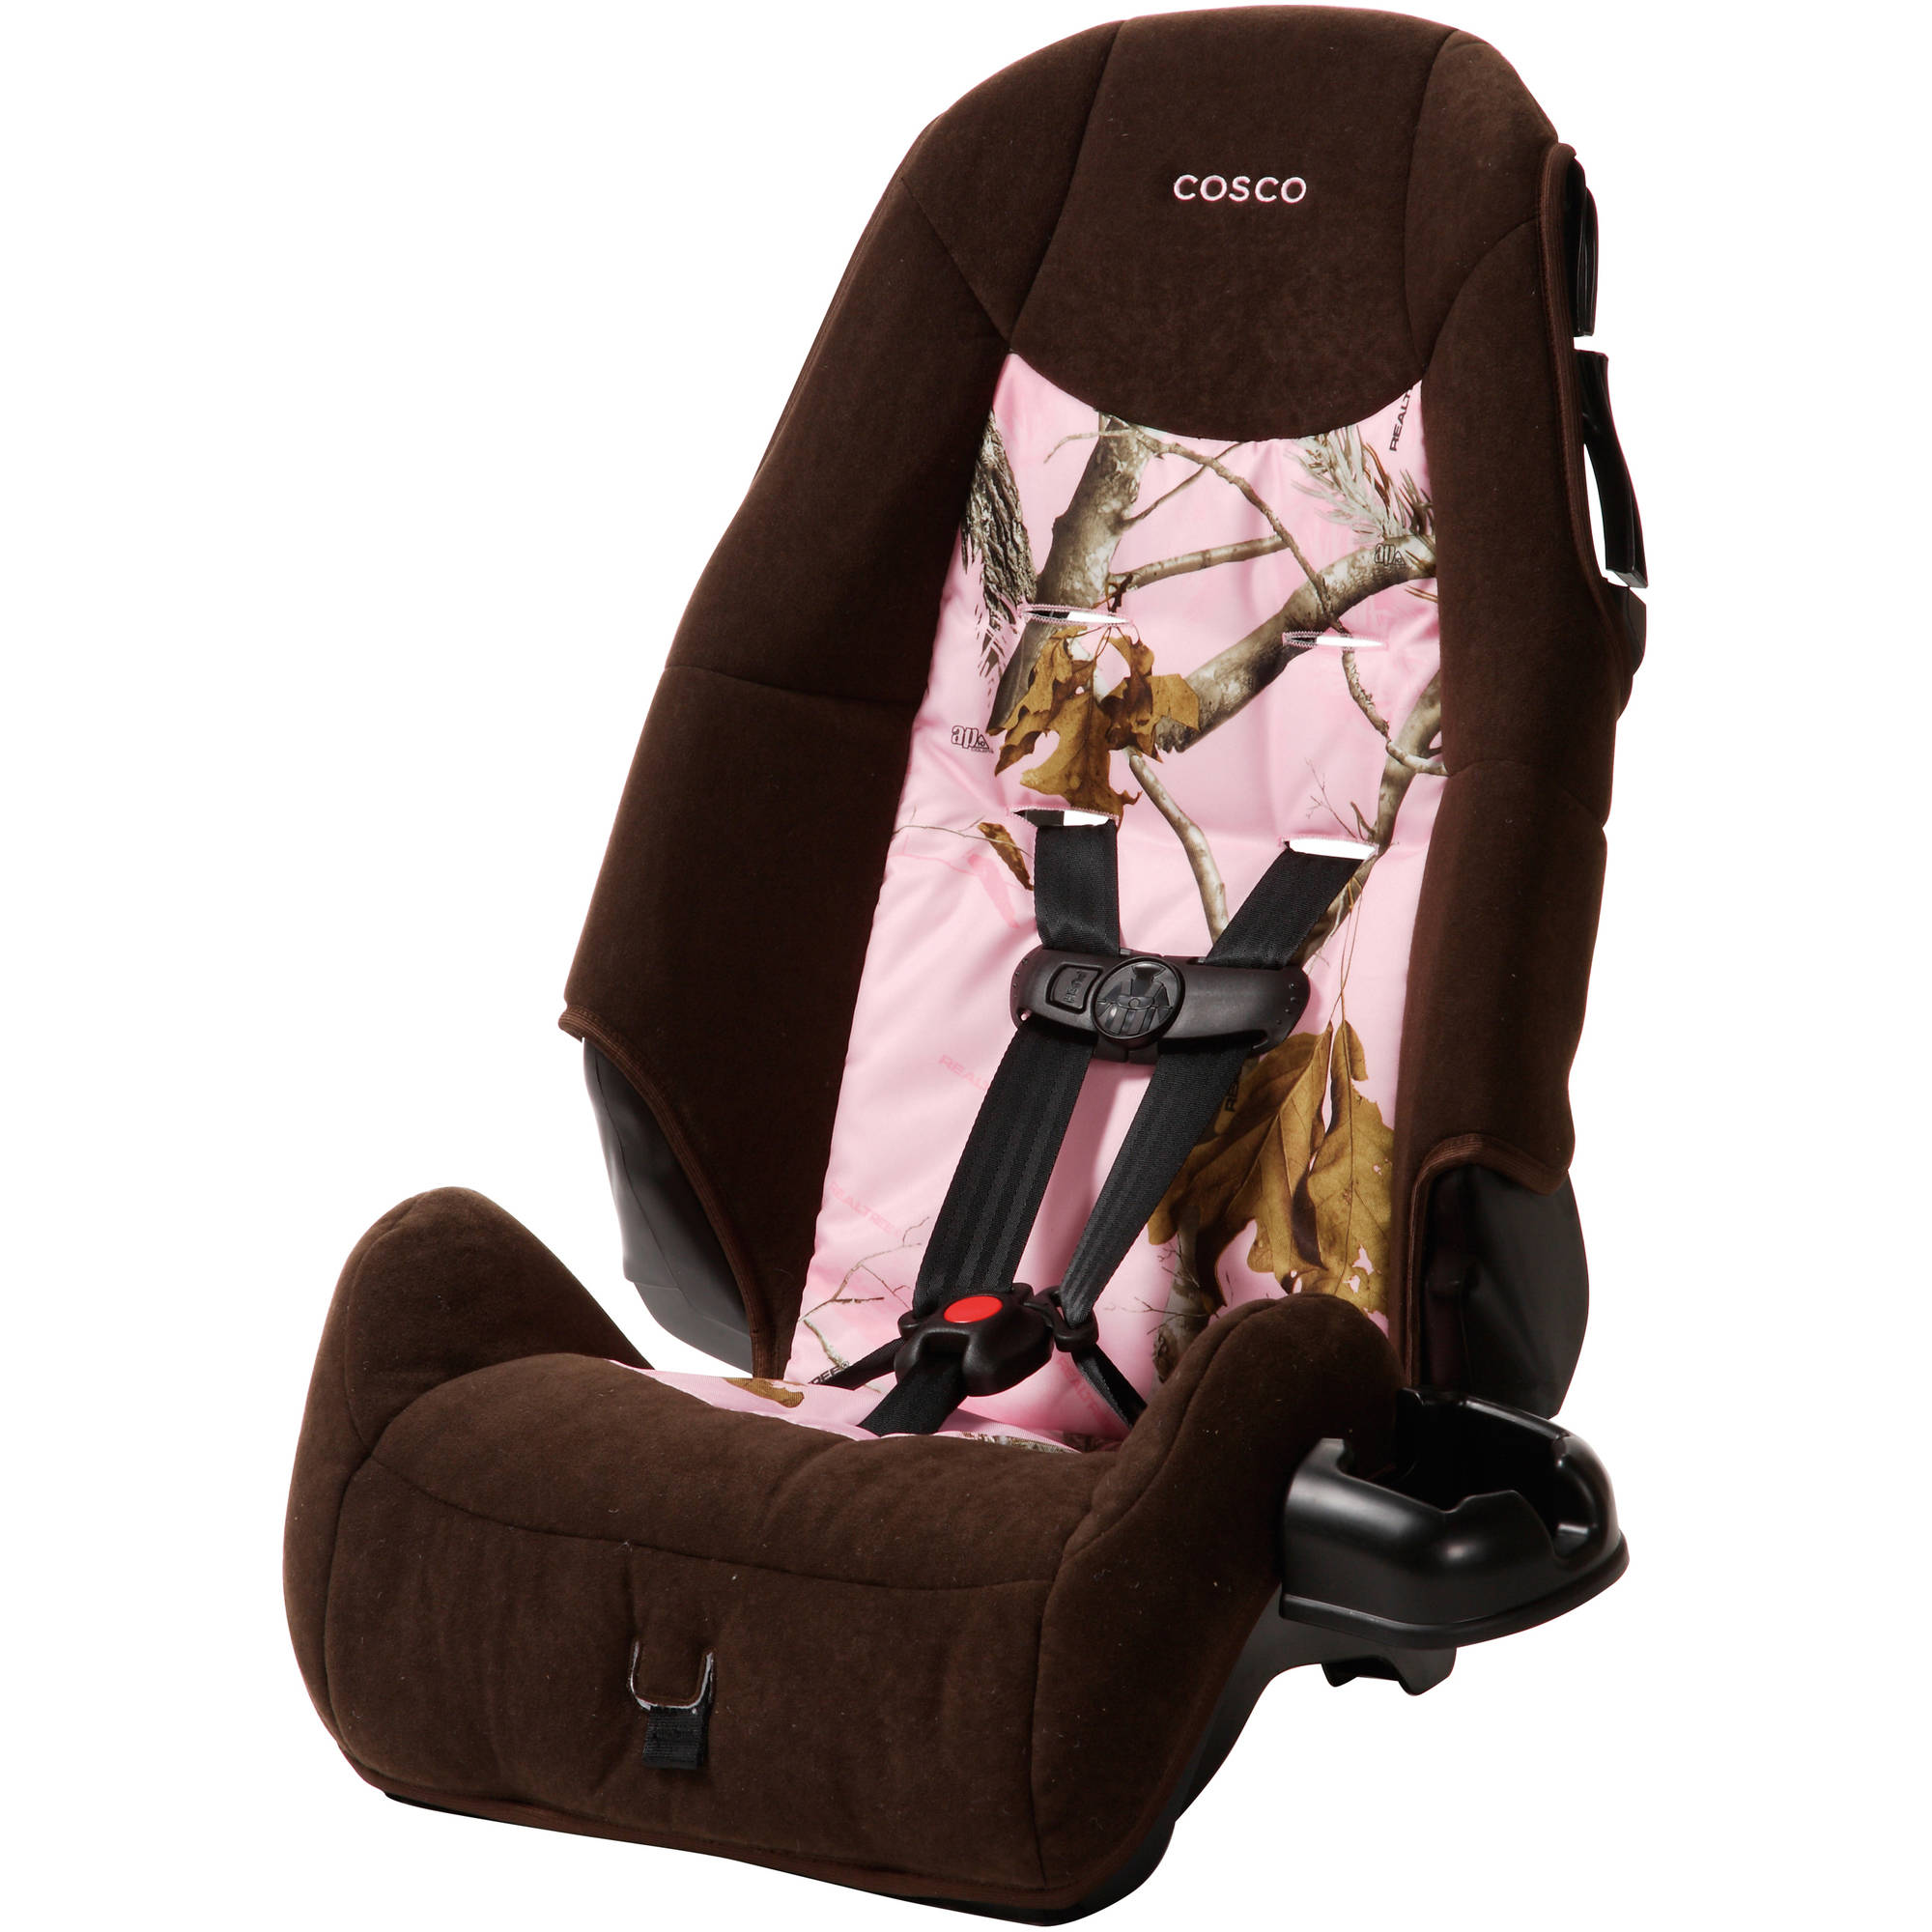 Cosco High-Back Booster Car Seat, Realtree Pink